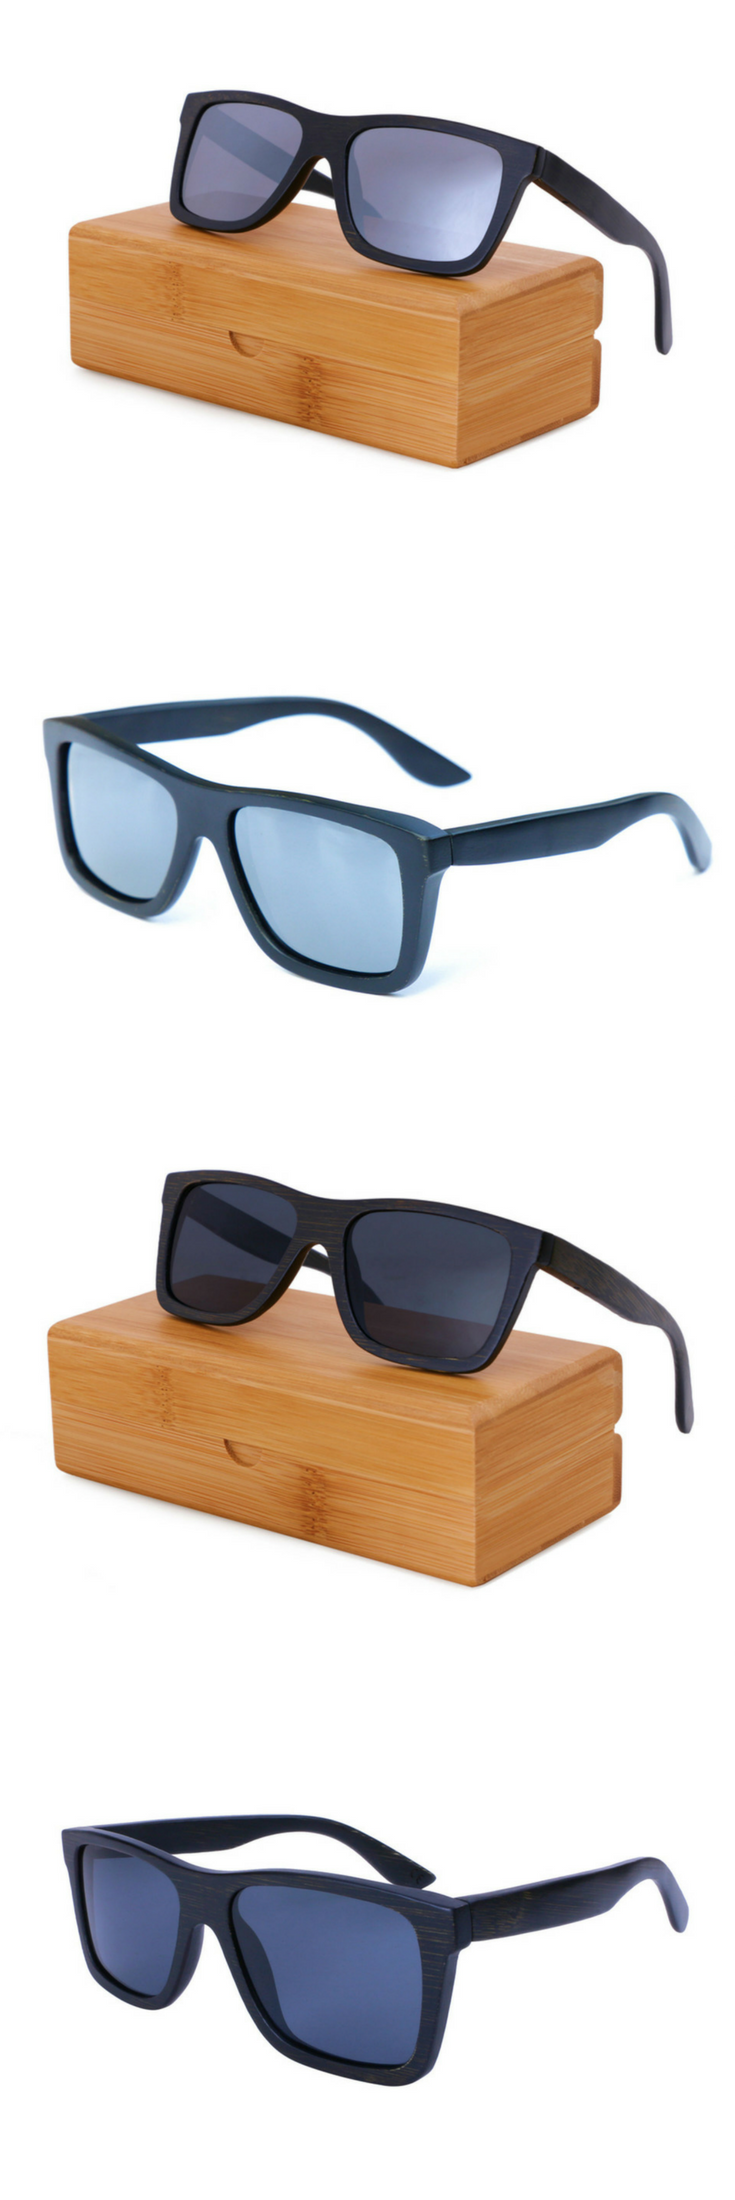 9196bd904f These men s sunglasses are made from 100% premium bamboo. They feature polarized  lenses available